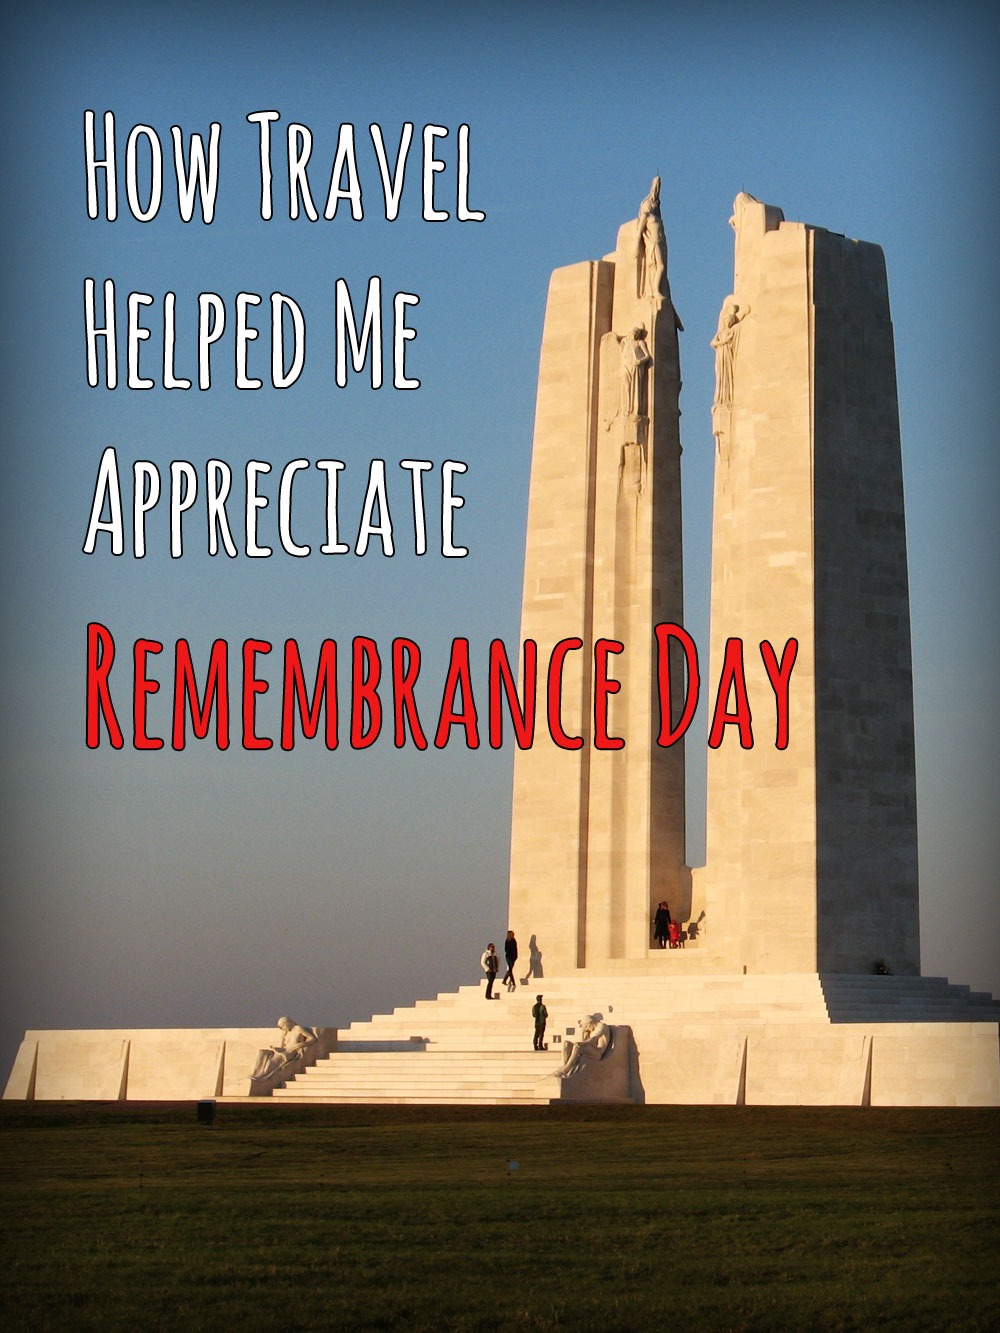 How Travel Helped Me Appreciate Remembrance Day